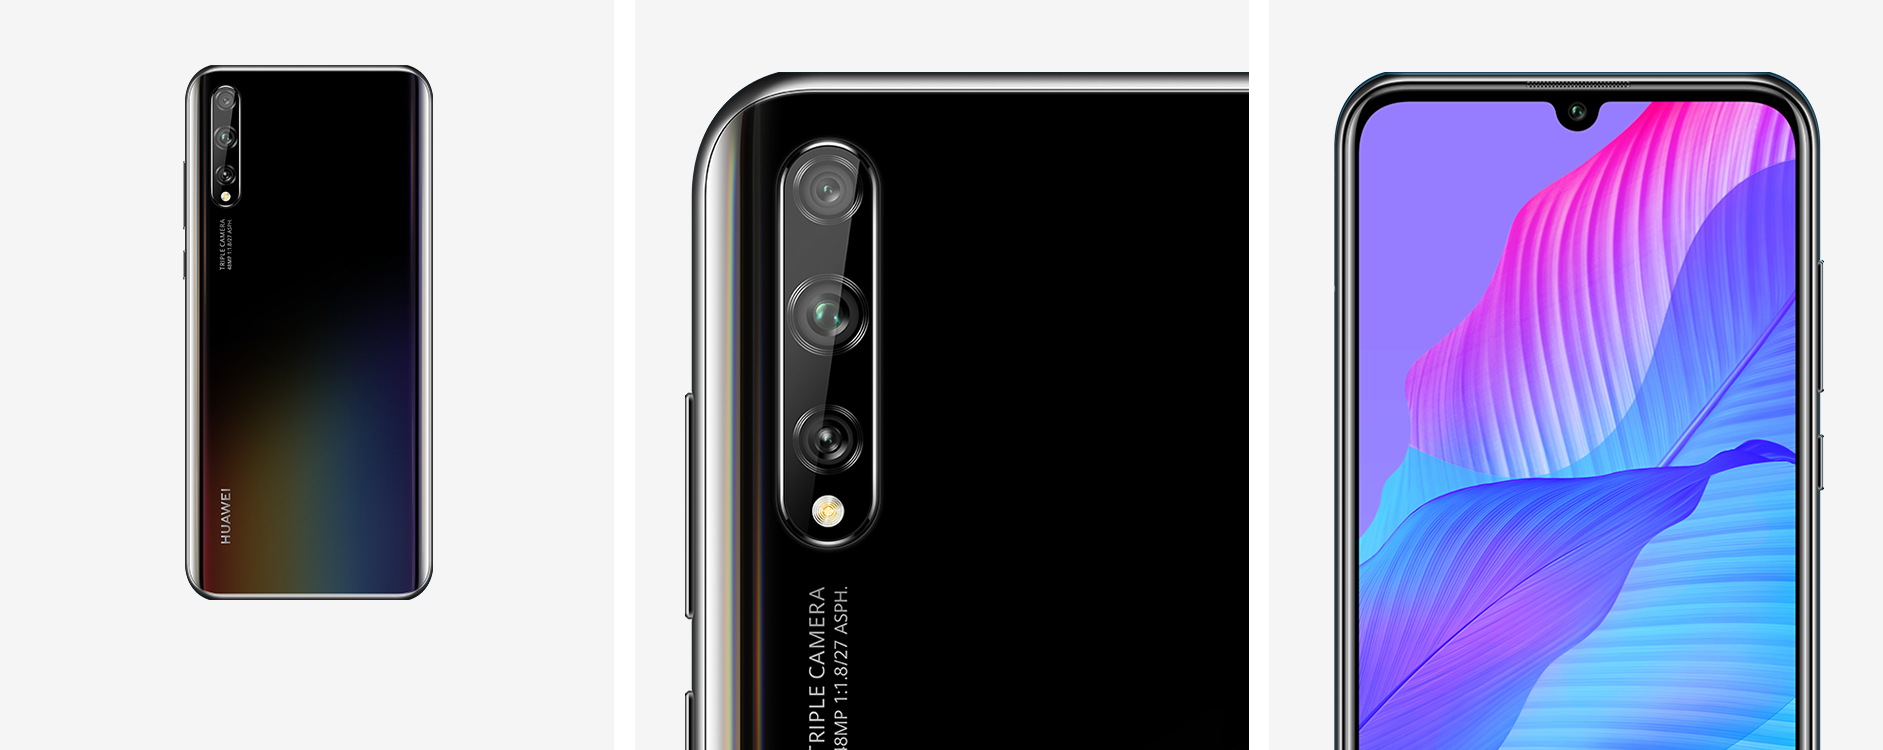 huawei y8p-colorful id phone